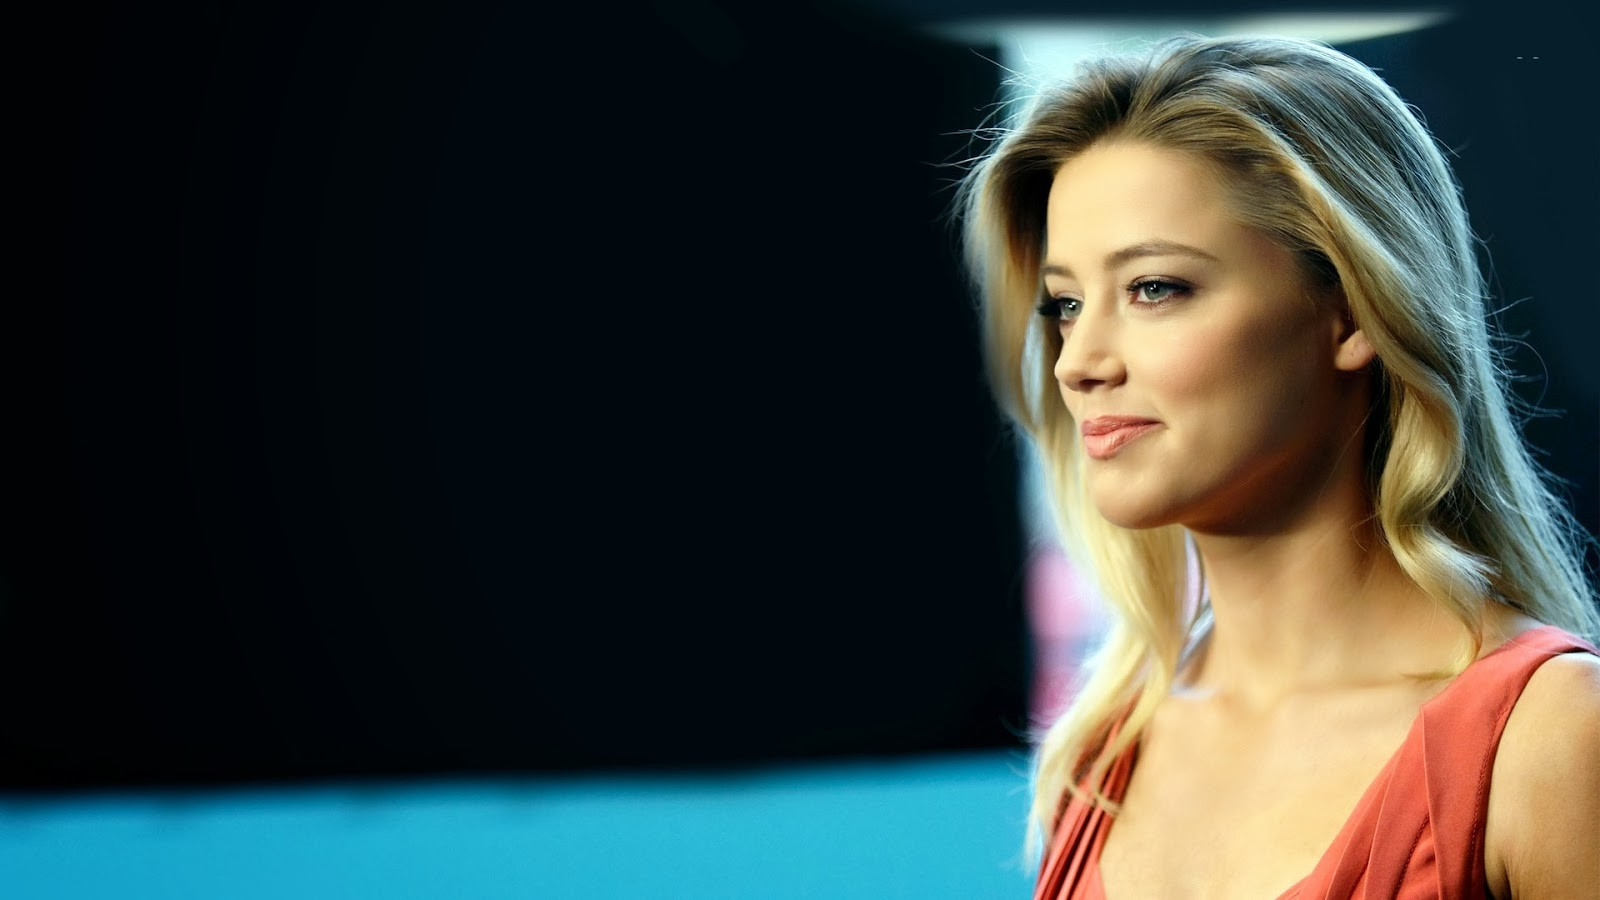 Amber Heard Clipart Cliparts Suggest Cliparts u0026 Vectors